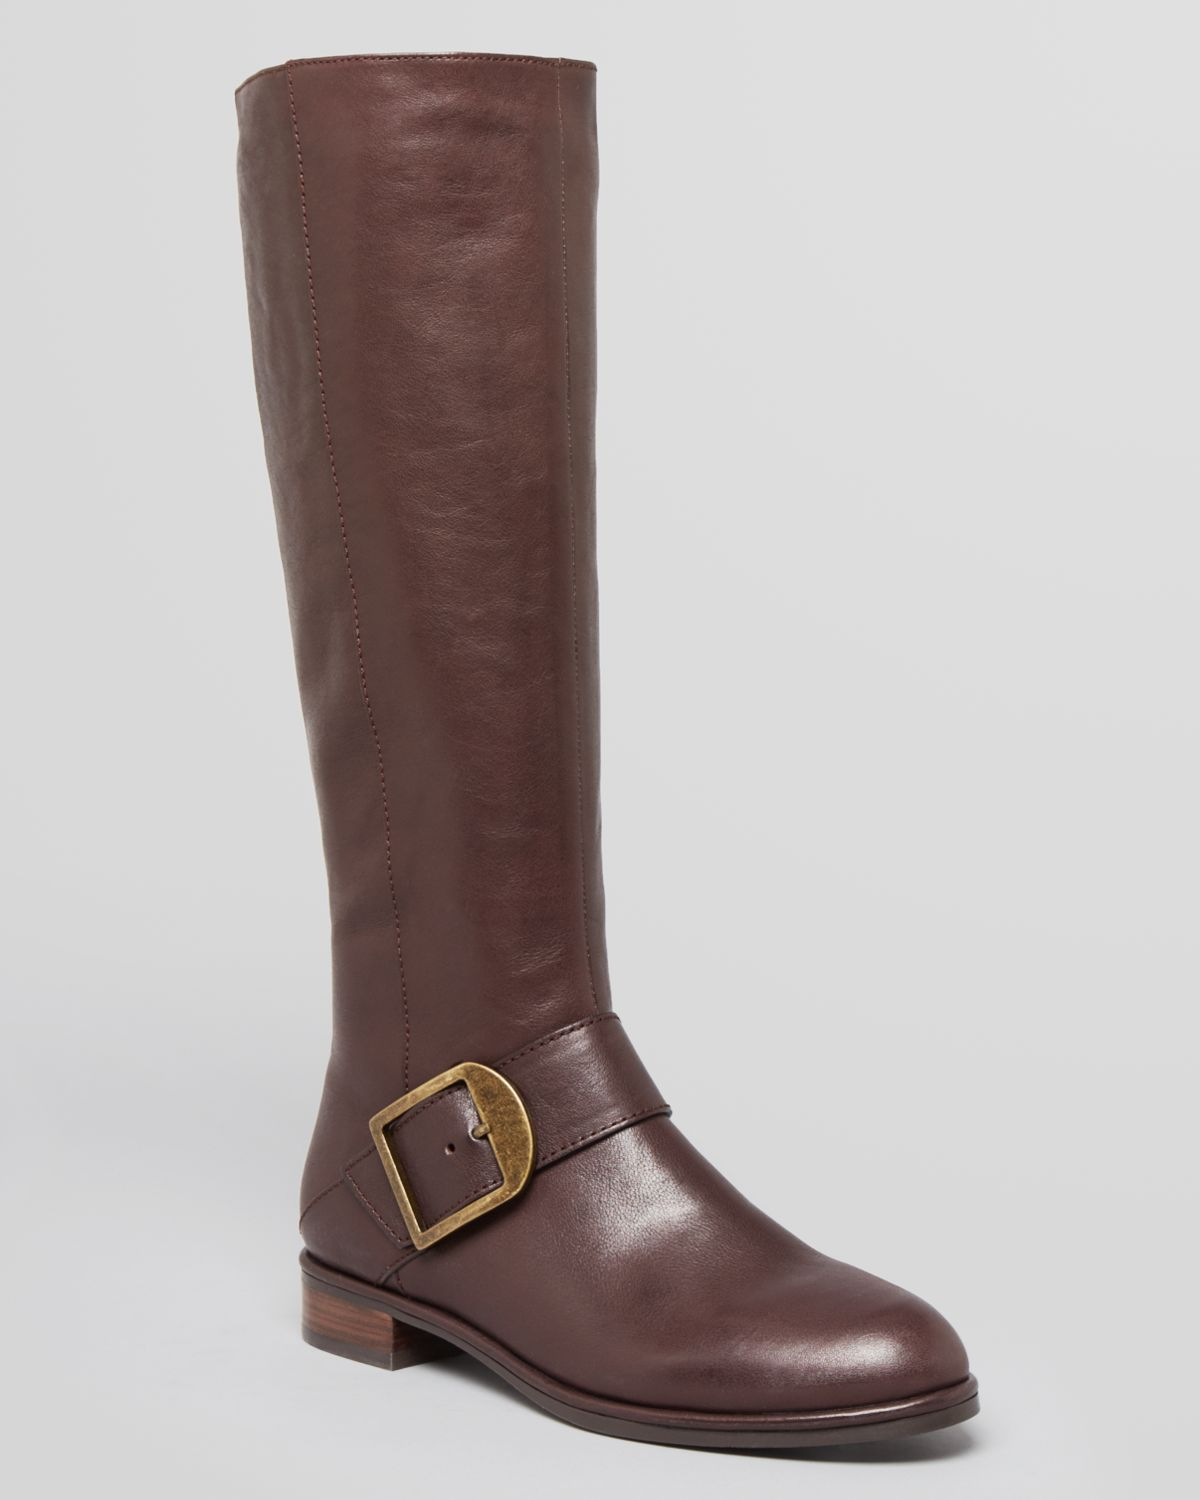 Via Spiga Tall Boots - Idola Buckle Flat | Bloomingdale's